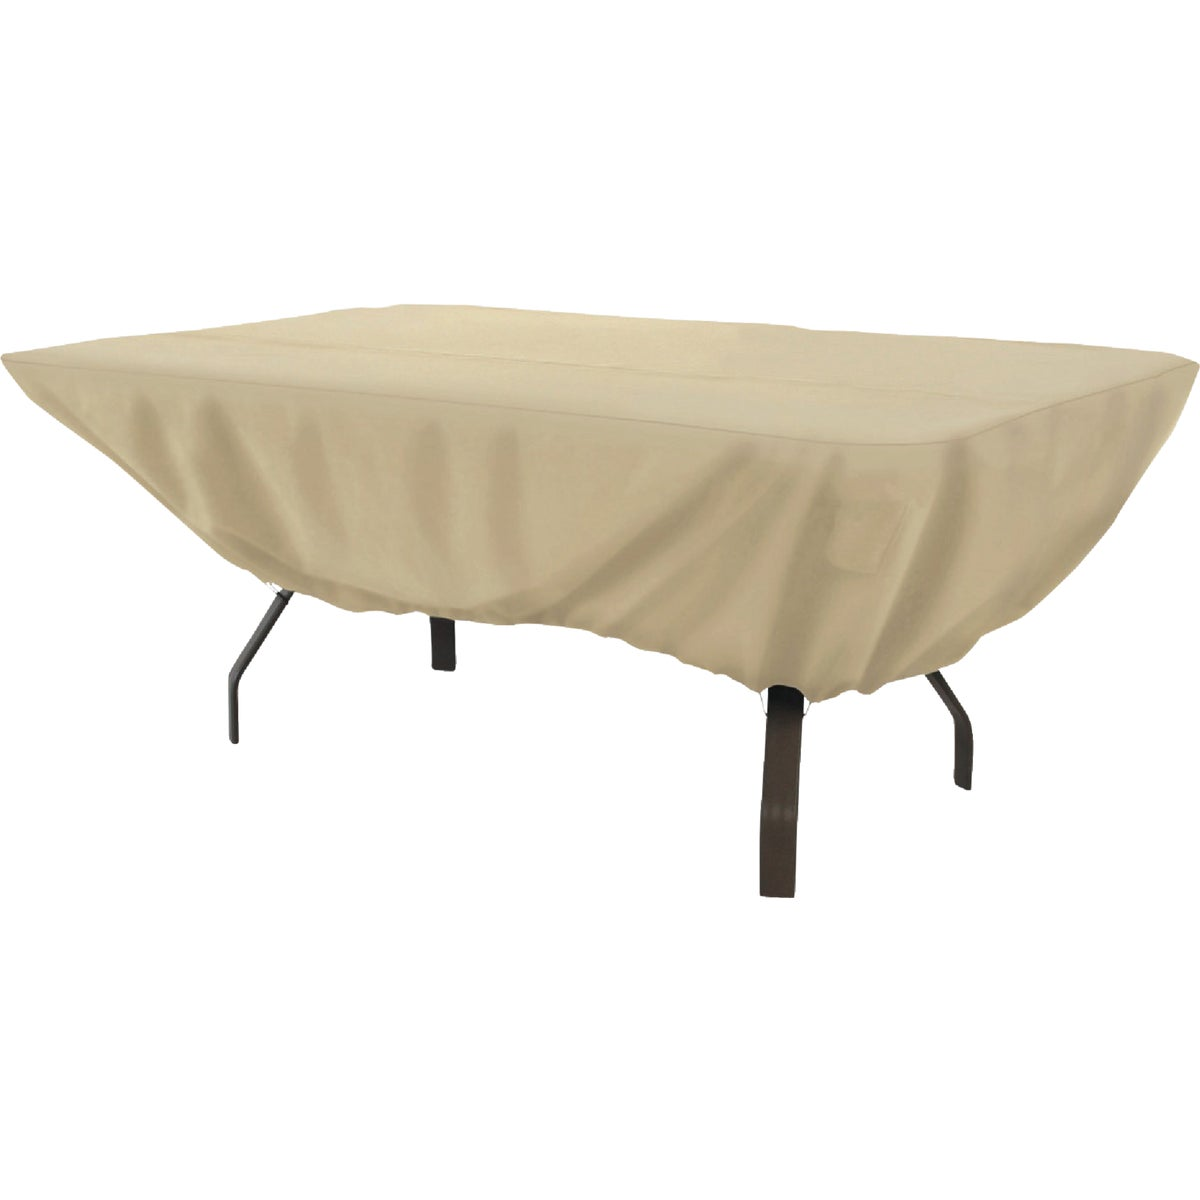 REC PATIO TABLE COVER - 58242 by Classic Accessories